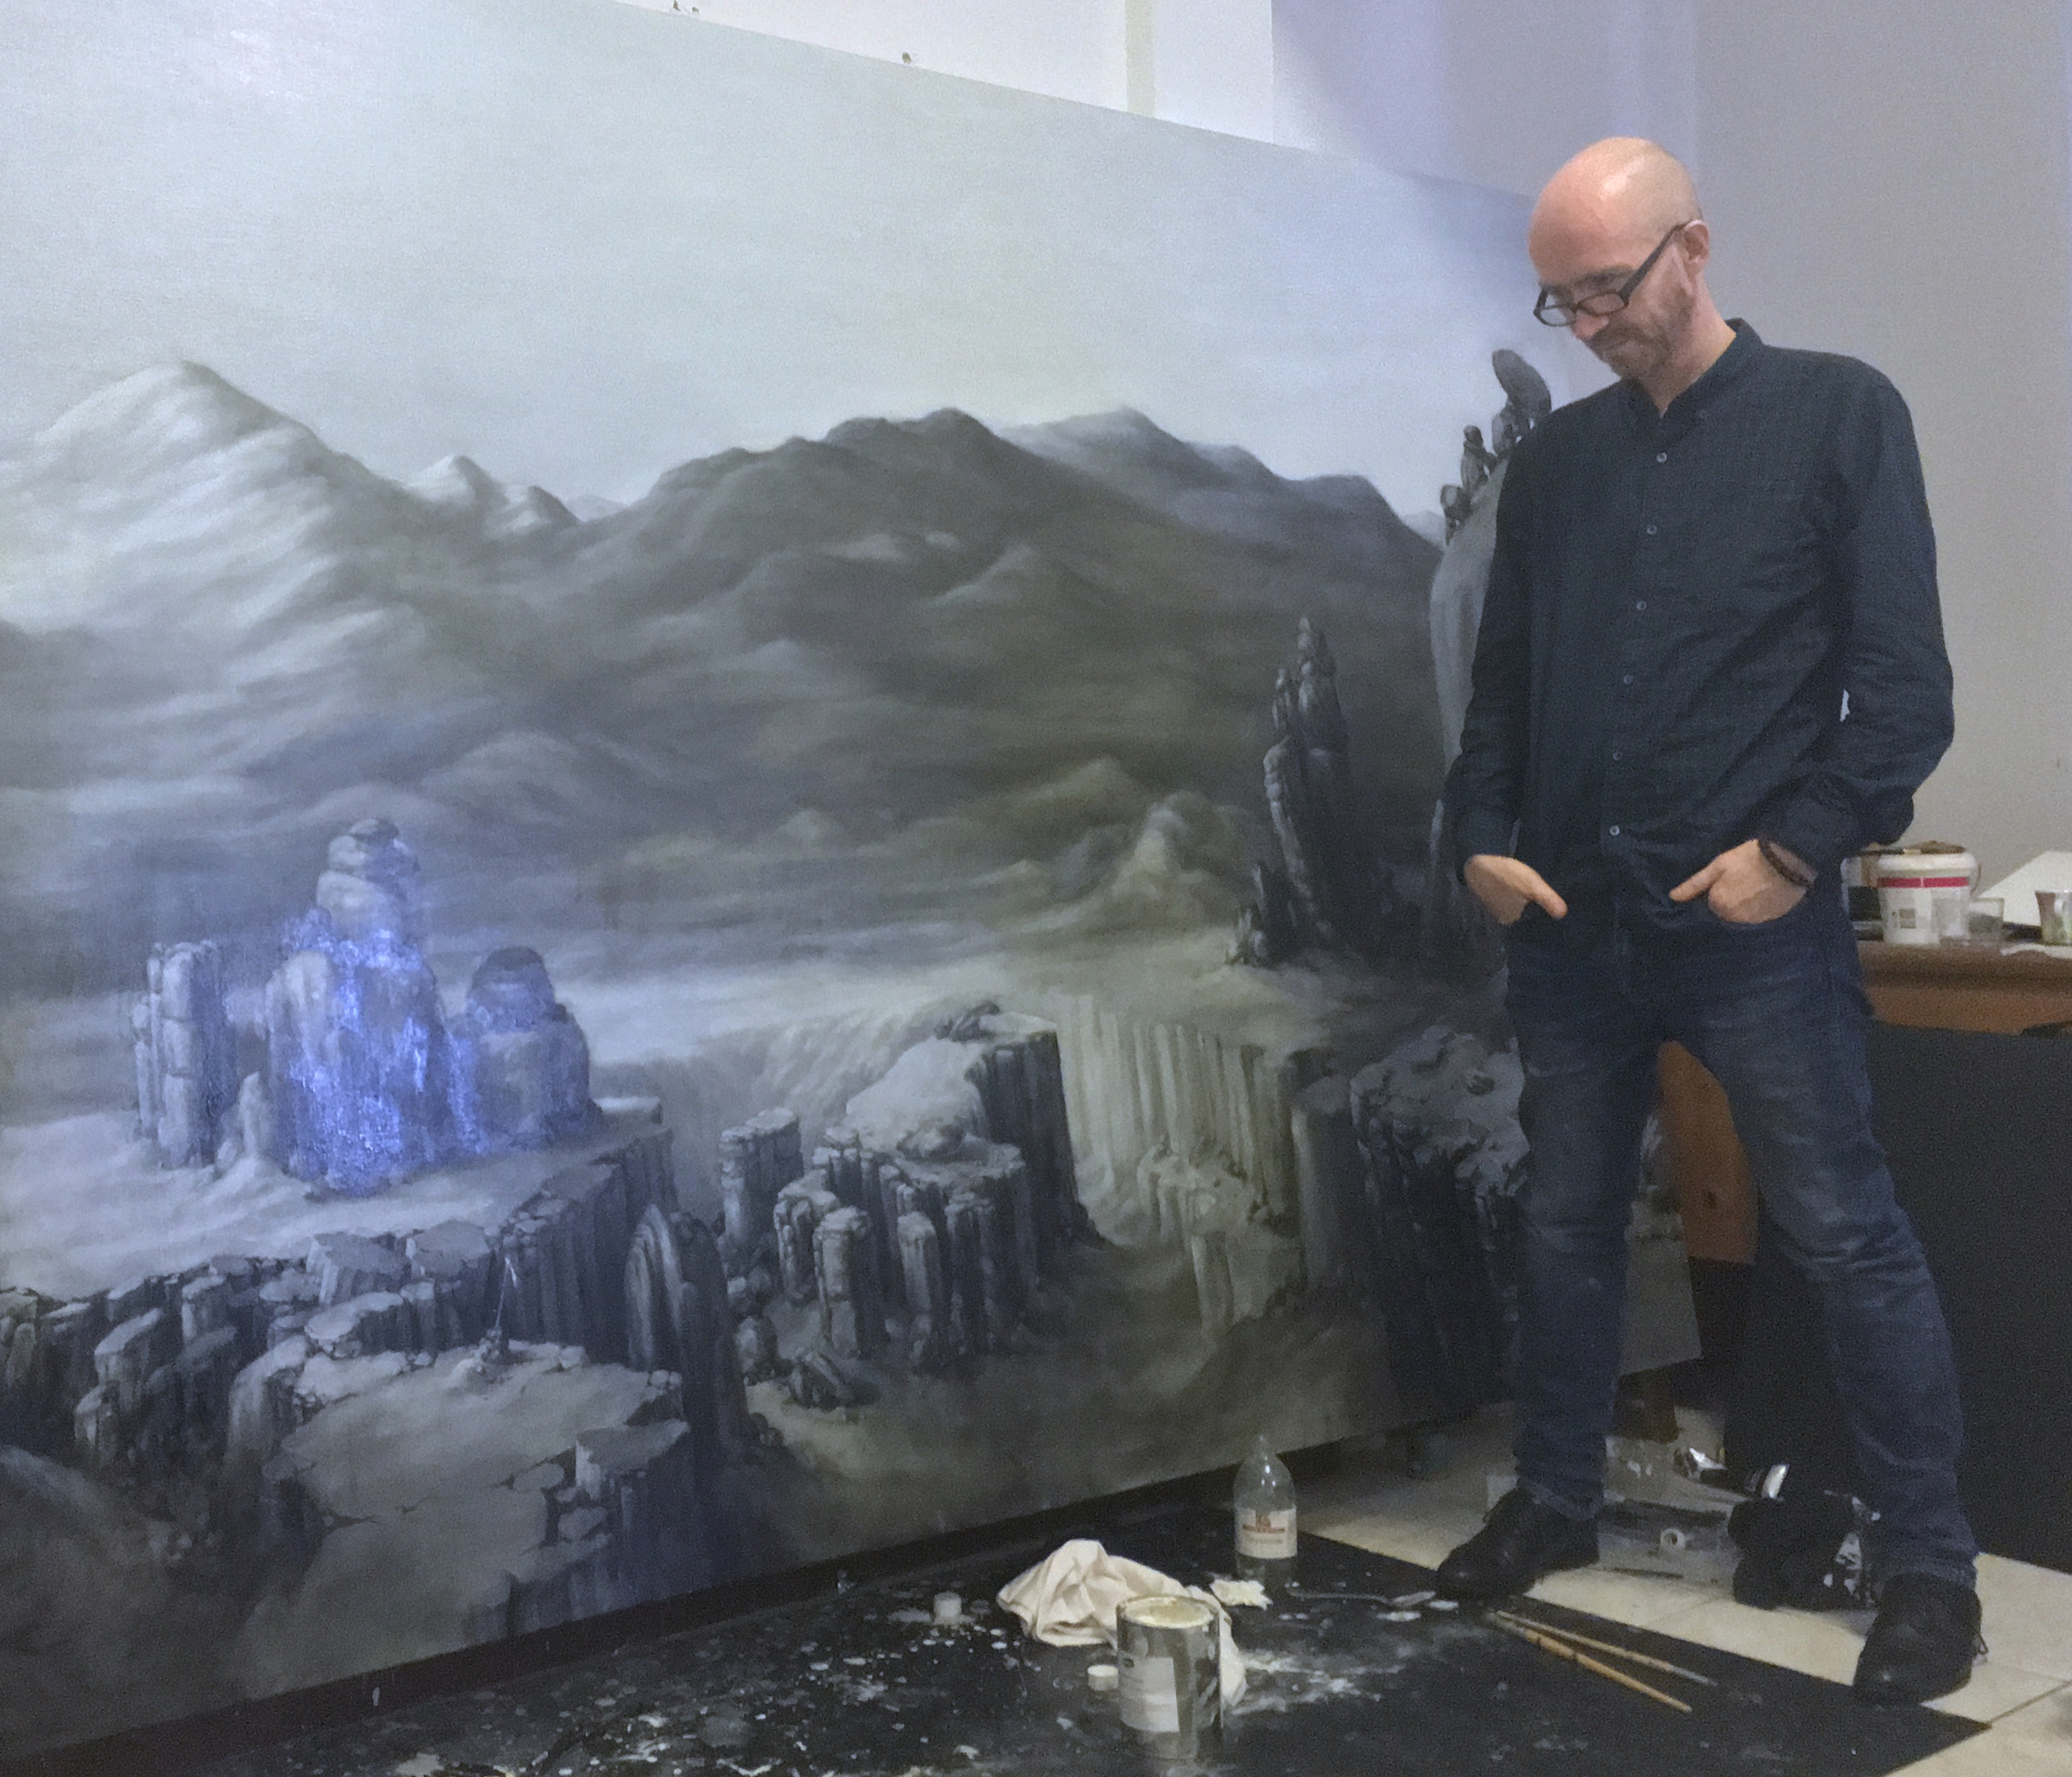 Artist Martin Constable in front of his latest painting (detail) in his studio at Nanyang Terrace, Singapore.